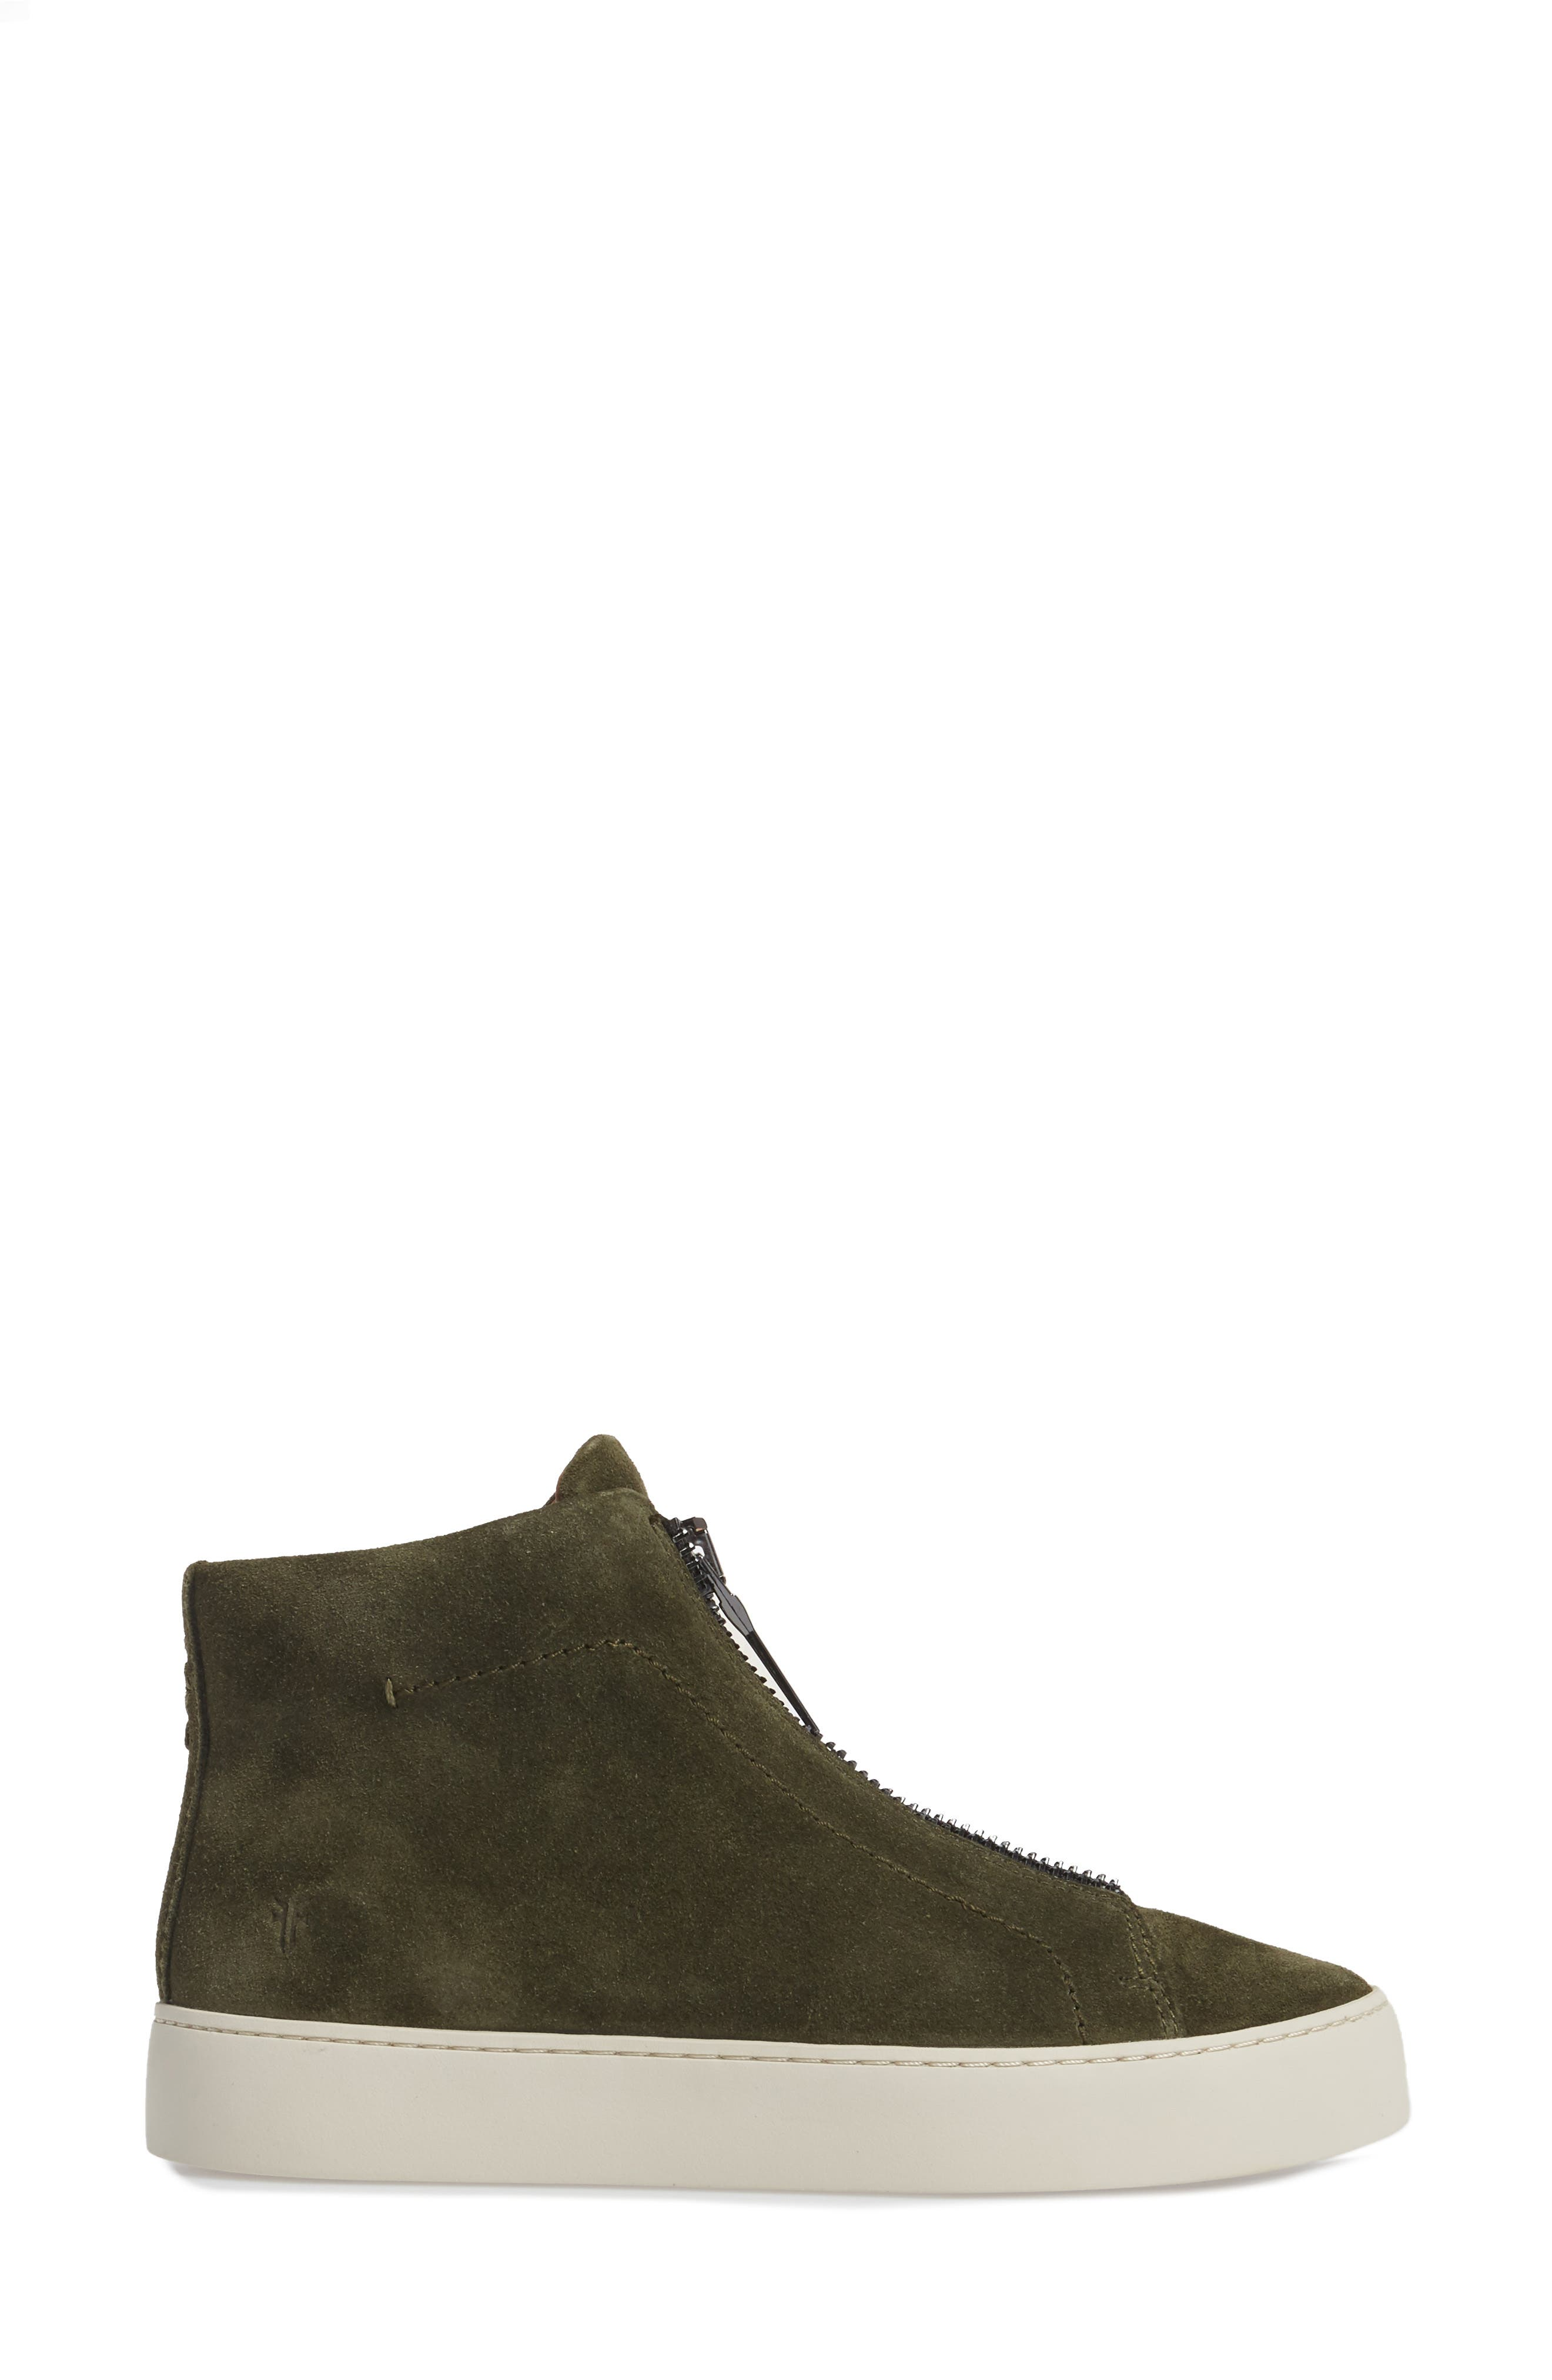 Lena Zip High Top Sneaker,                             Alternate thumbnail 3, color,                             Forest Suede